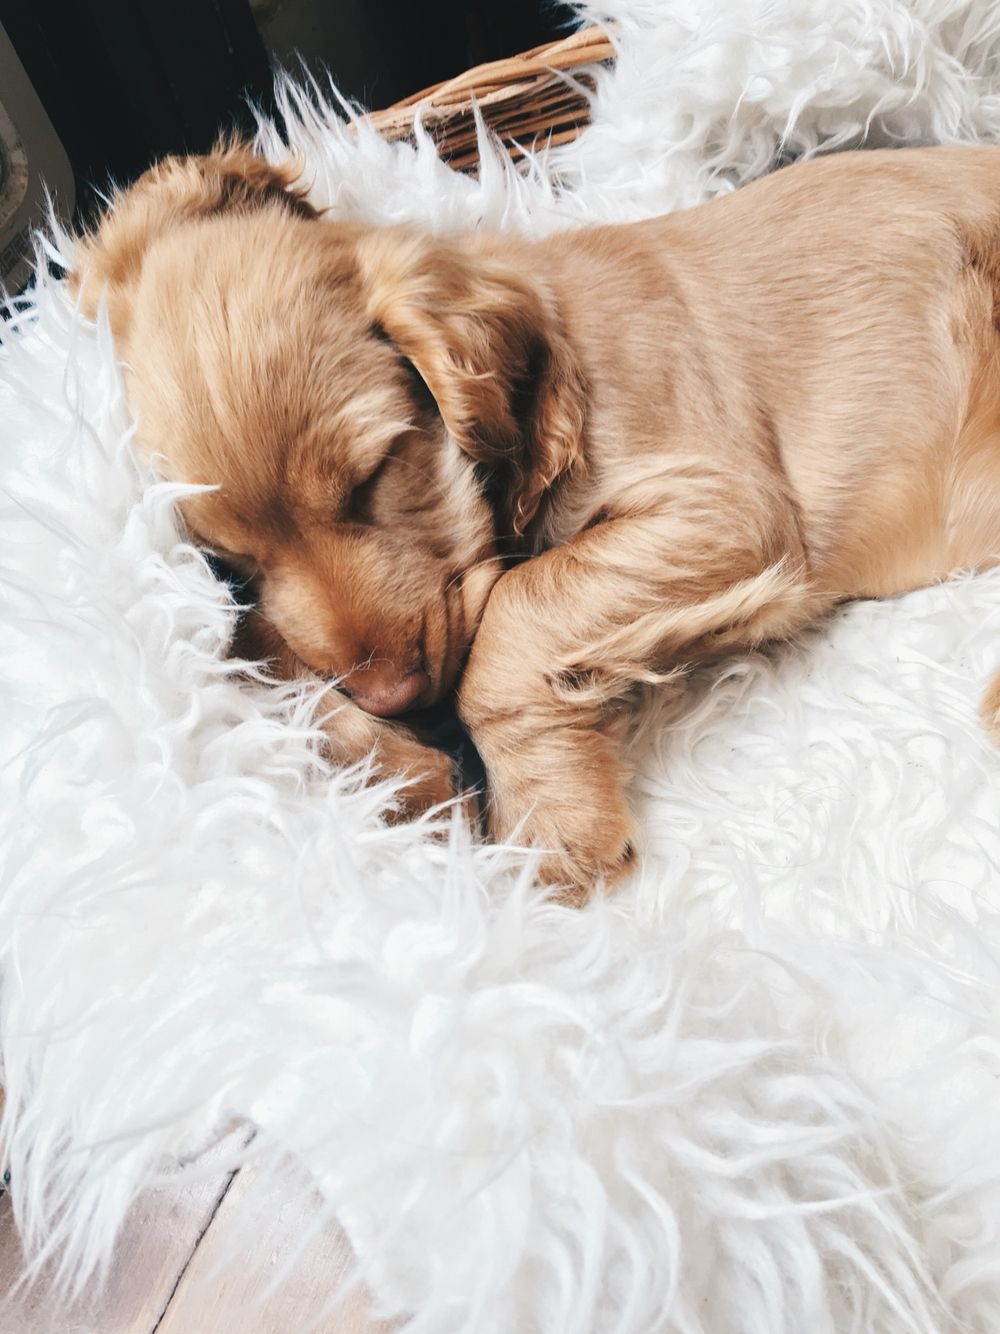 Pin by danika houghton on puppy pinterest sleeping puppies